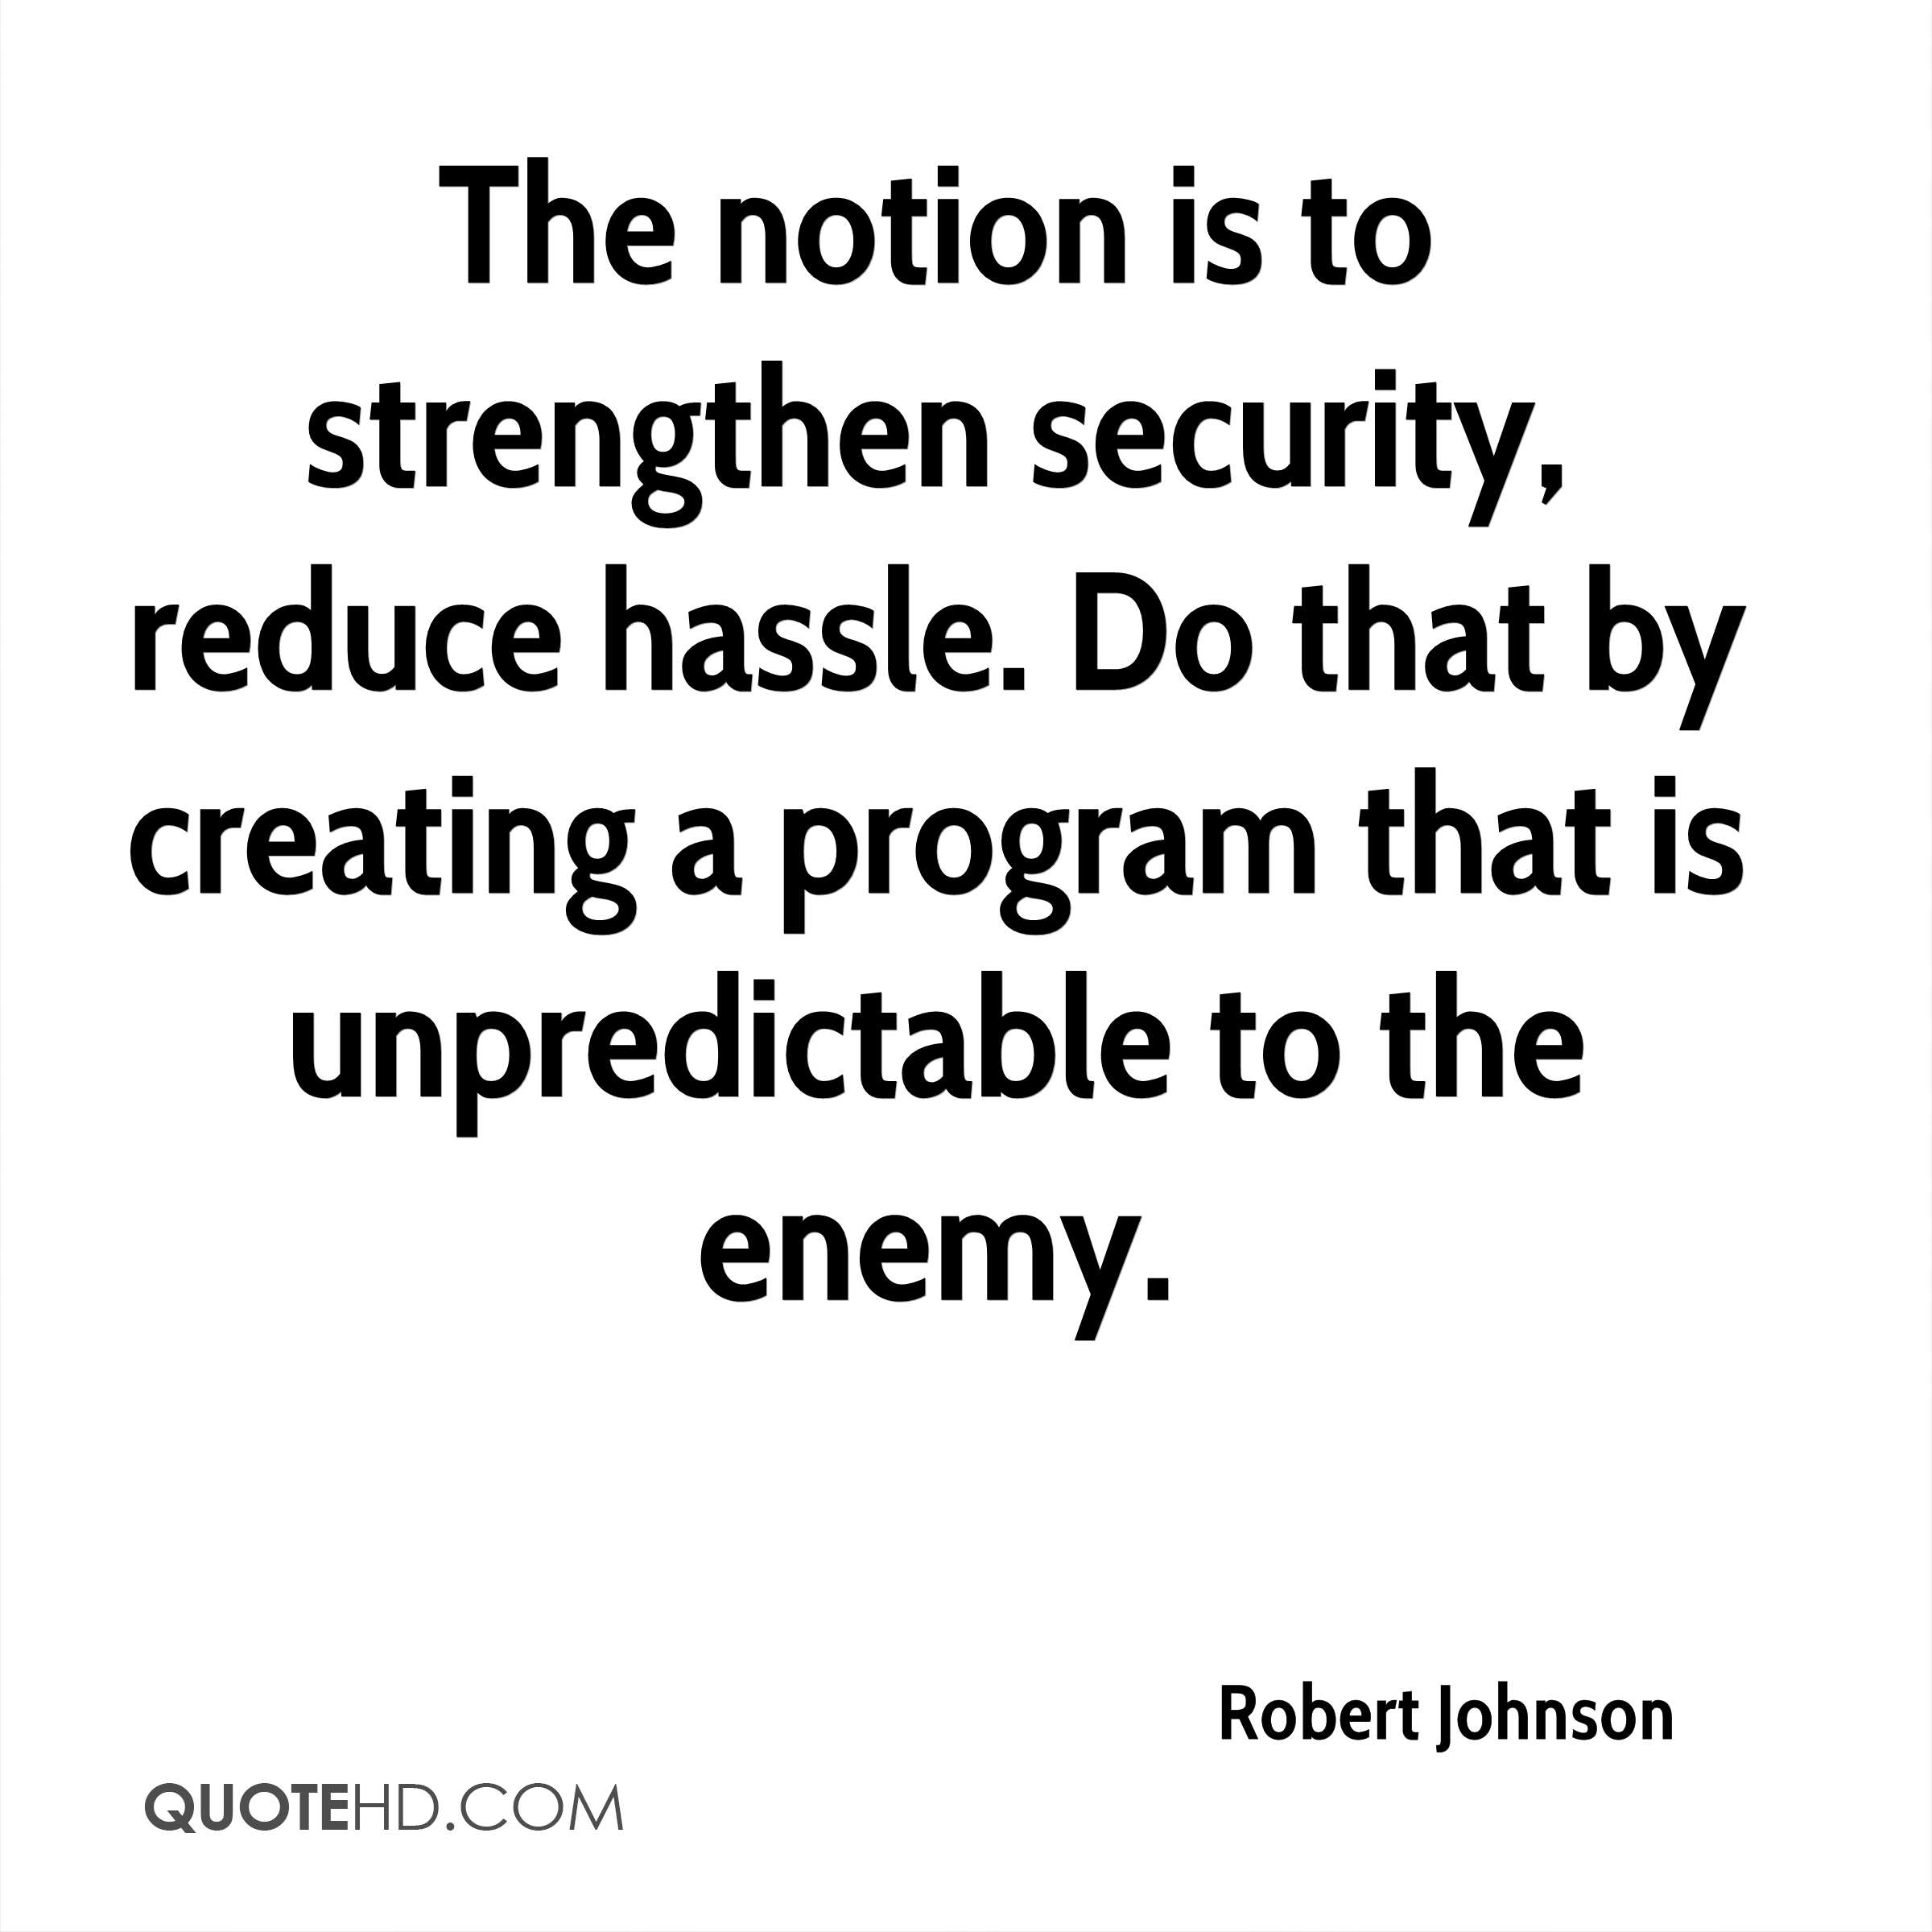 The notion is to strengthen security, reduce hassle. Do that by creating a program that is unpredictable to the enemy.